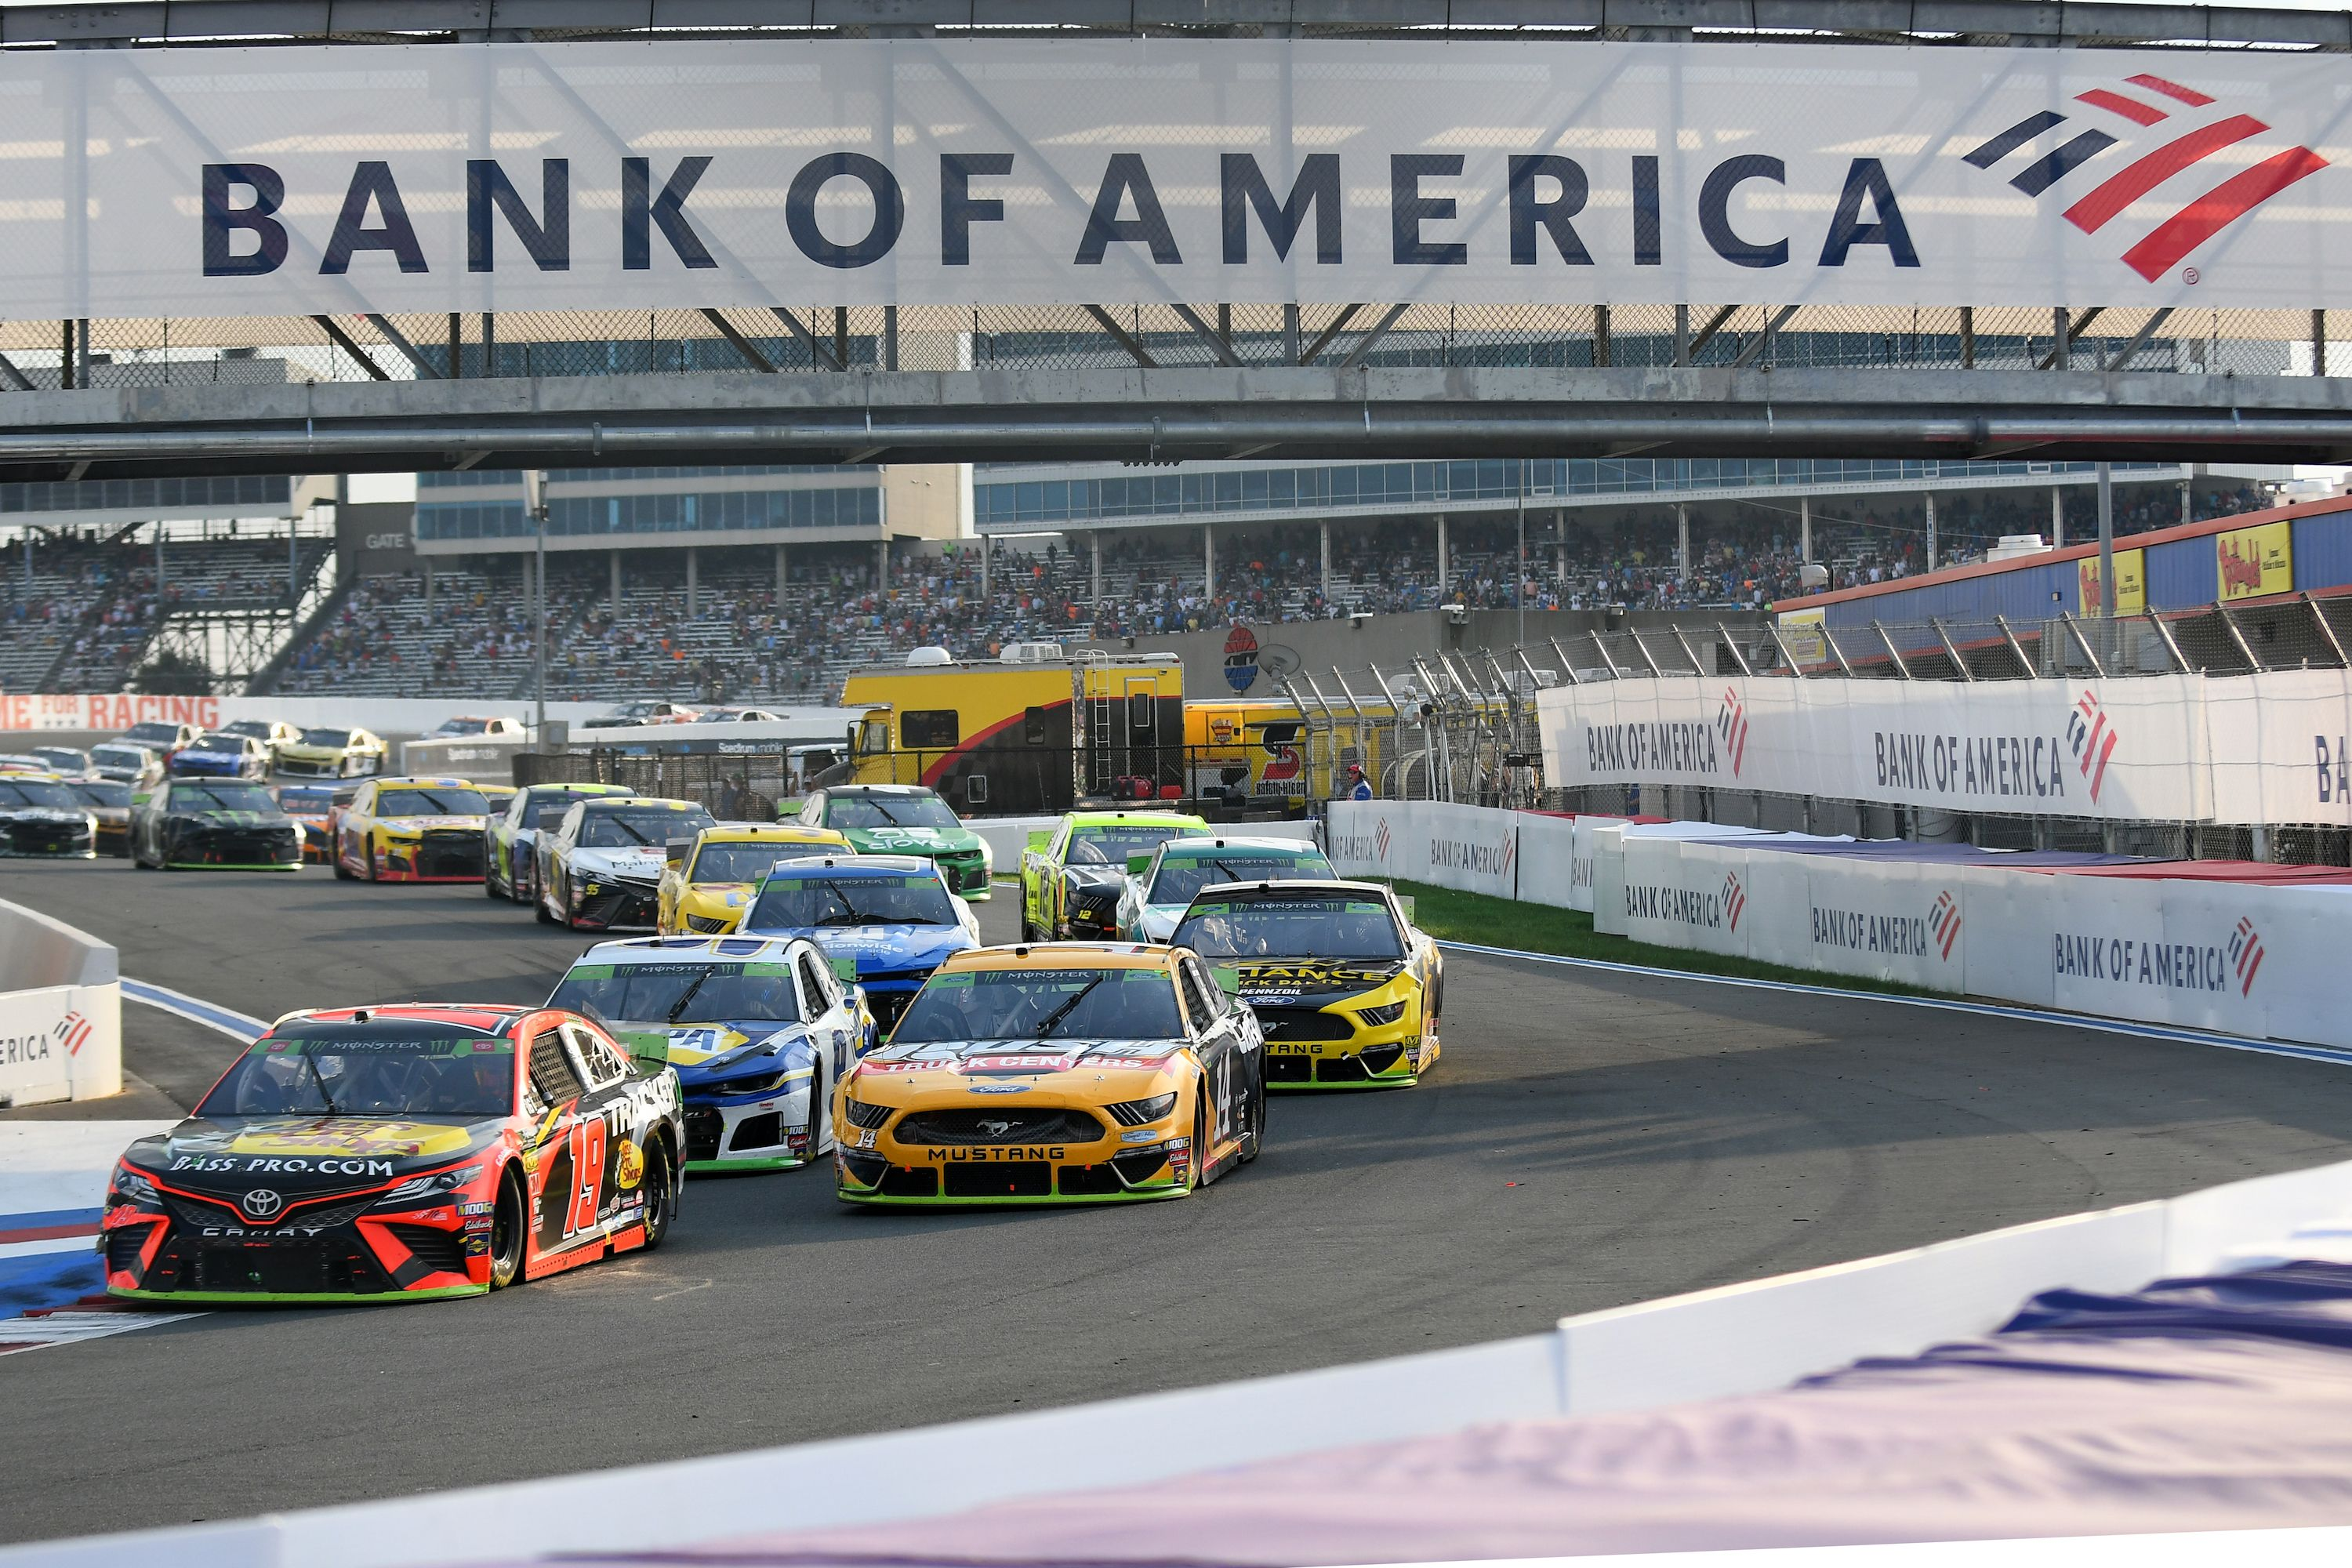 The NASCAR Cup Series Is Set To Race on Dirt for the First Time in 50 Years